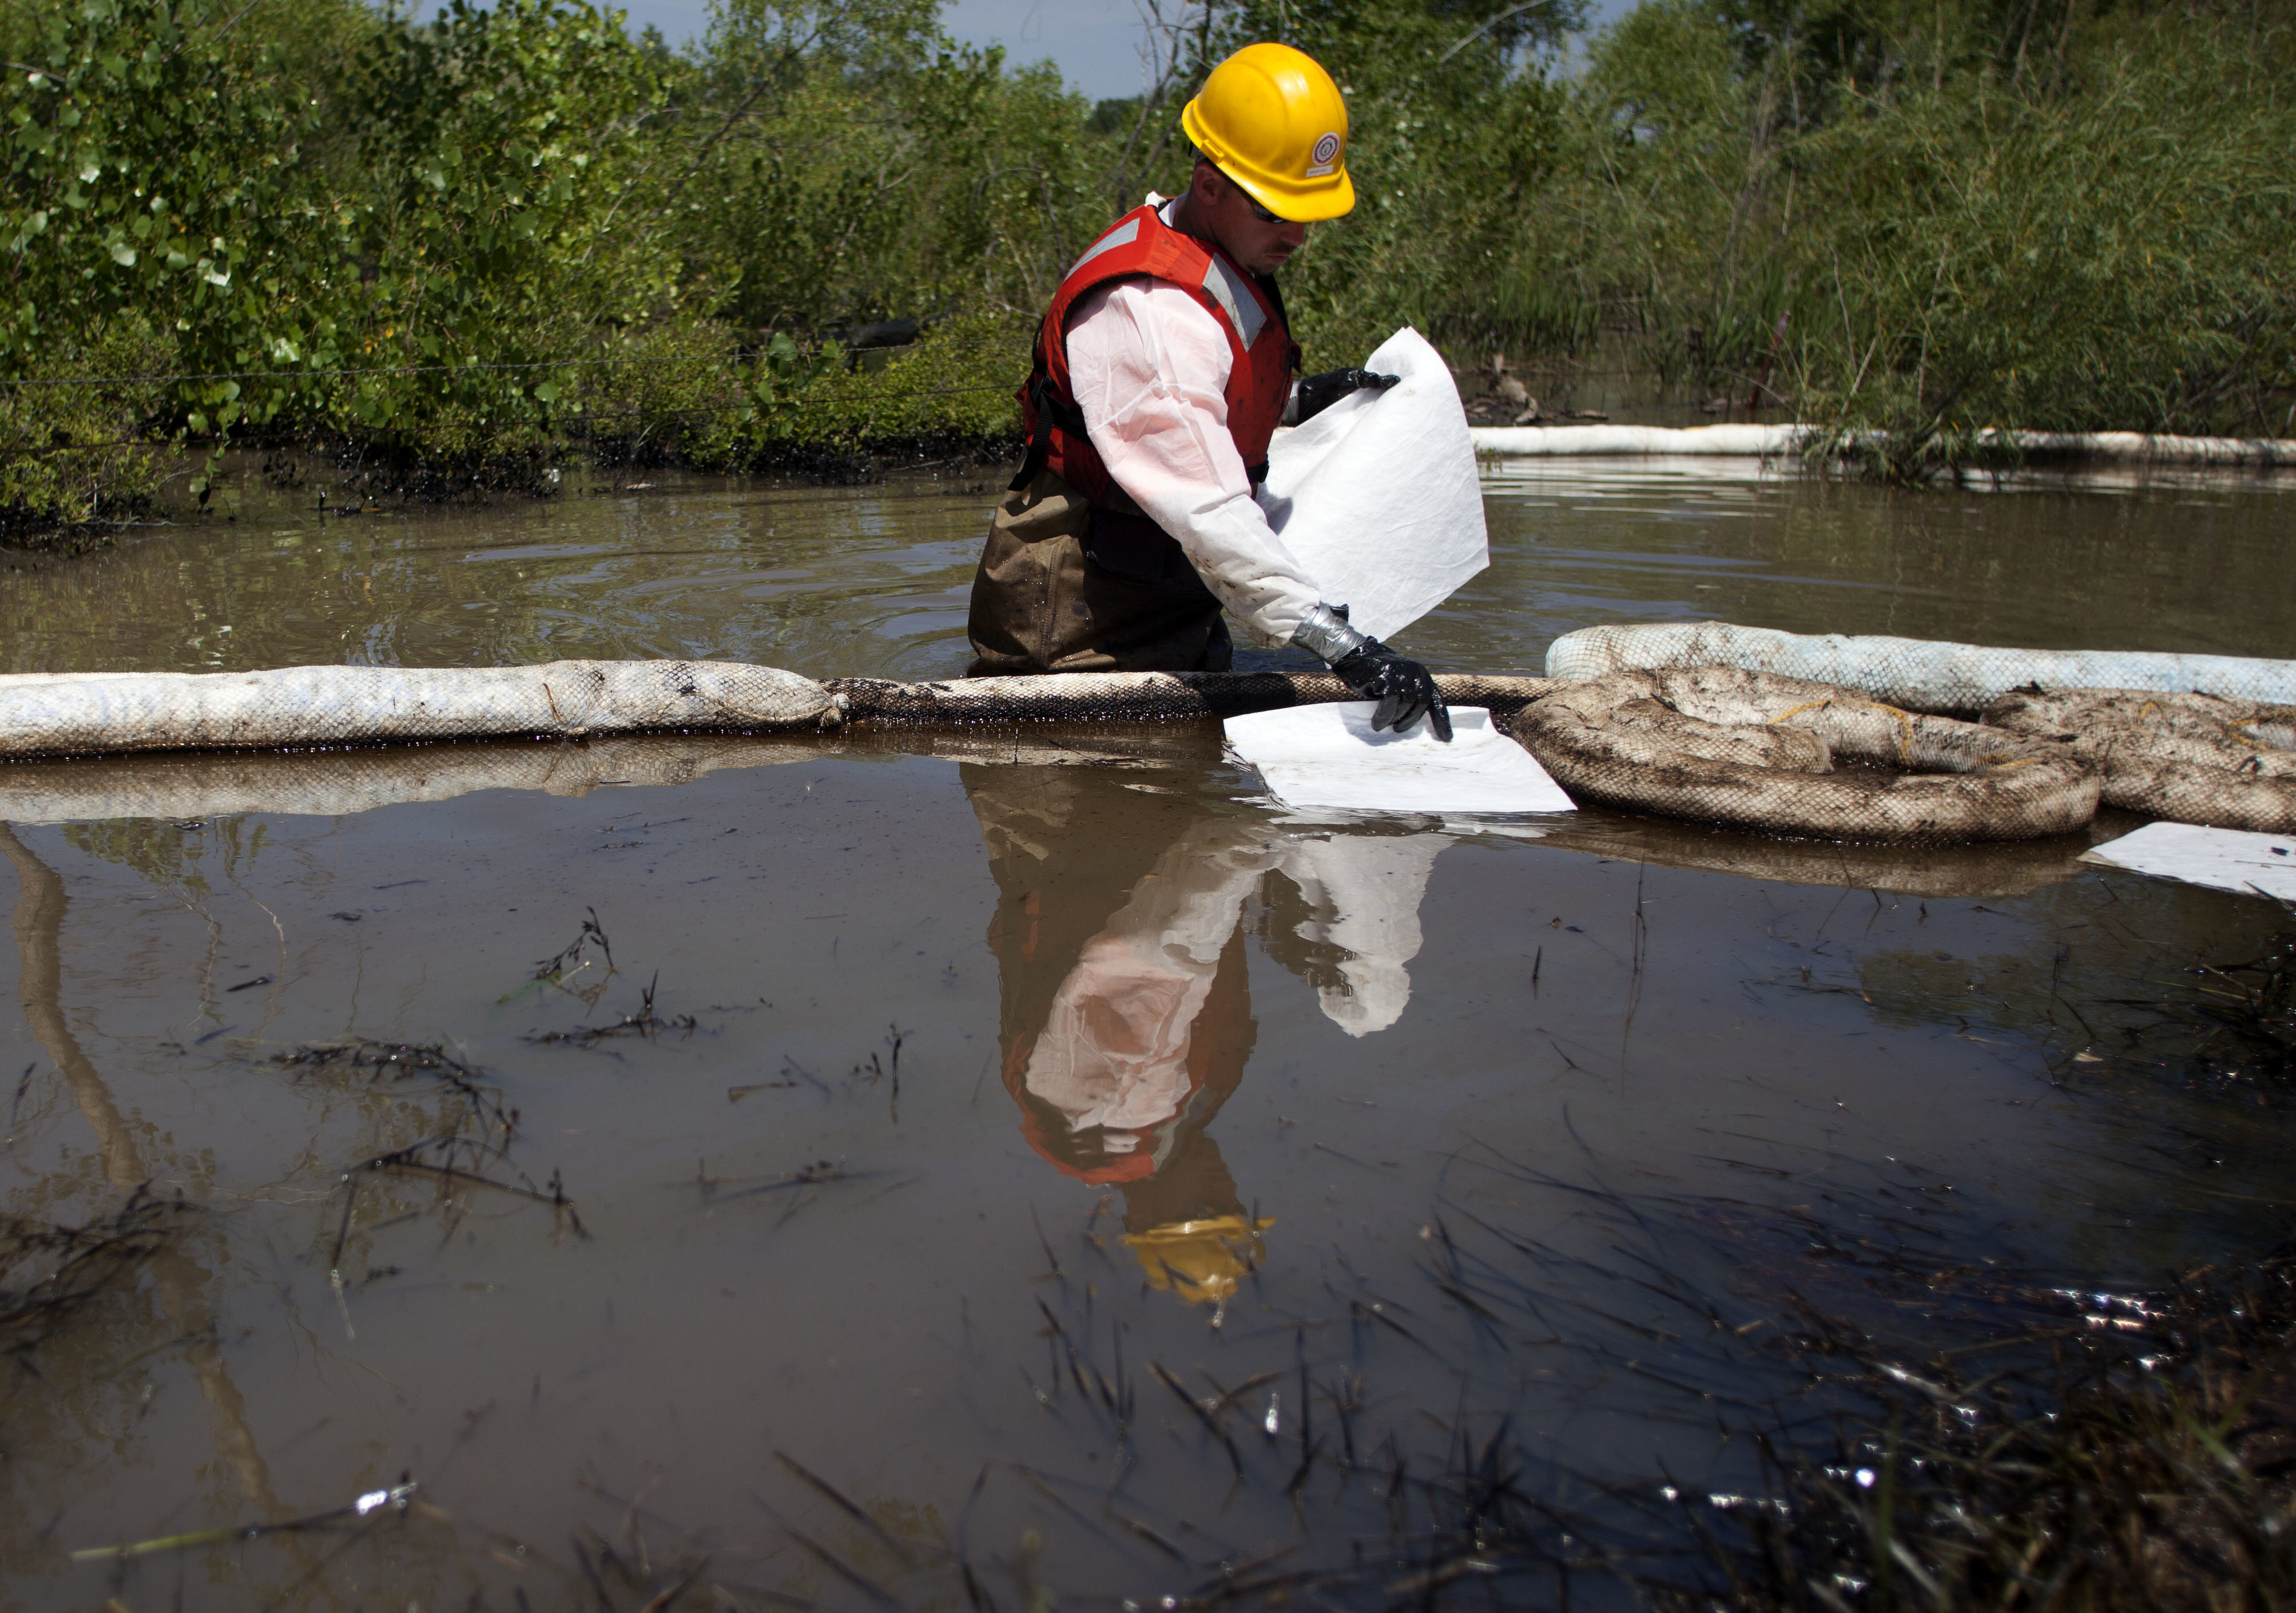 Do republicans care about the environment now that the oils spill is affecting the red states?